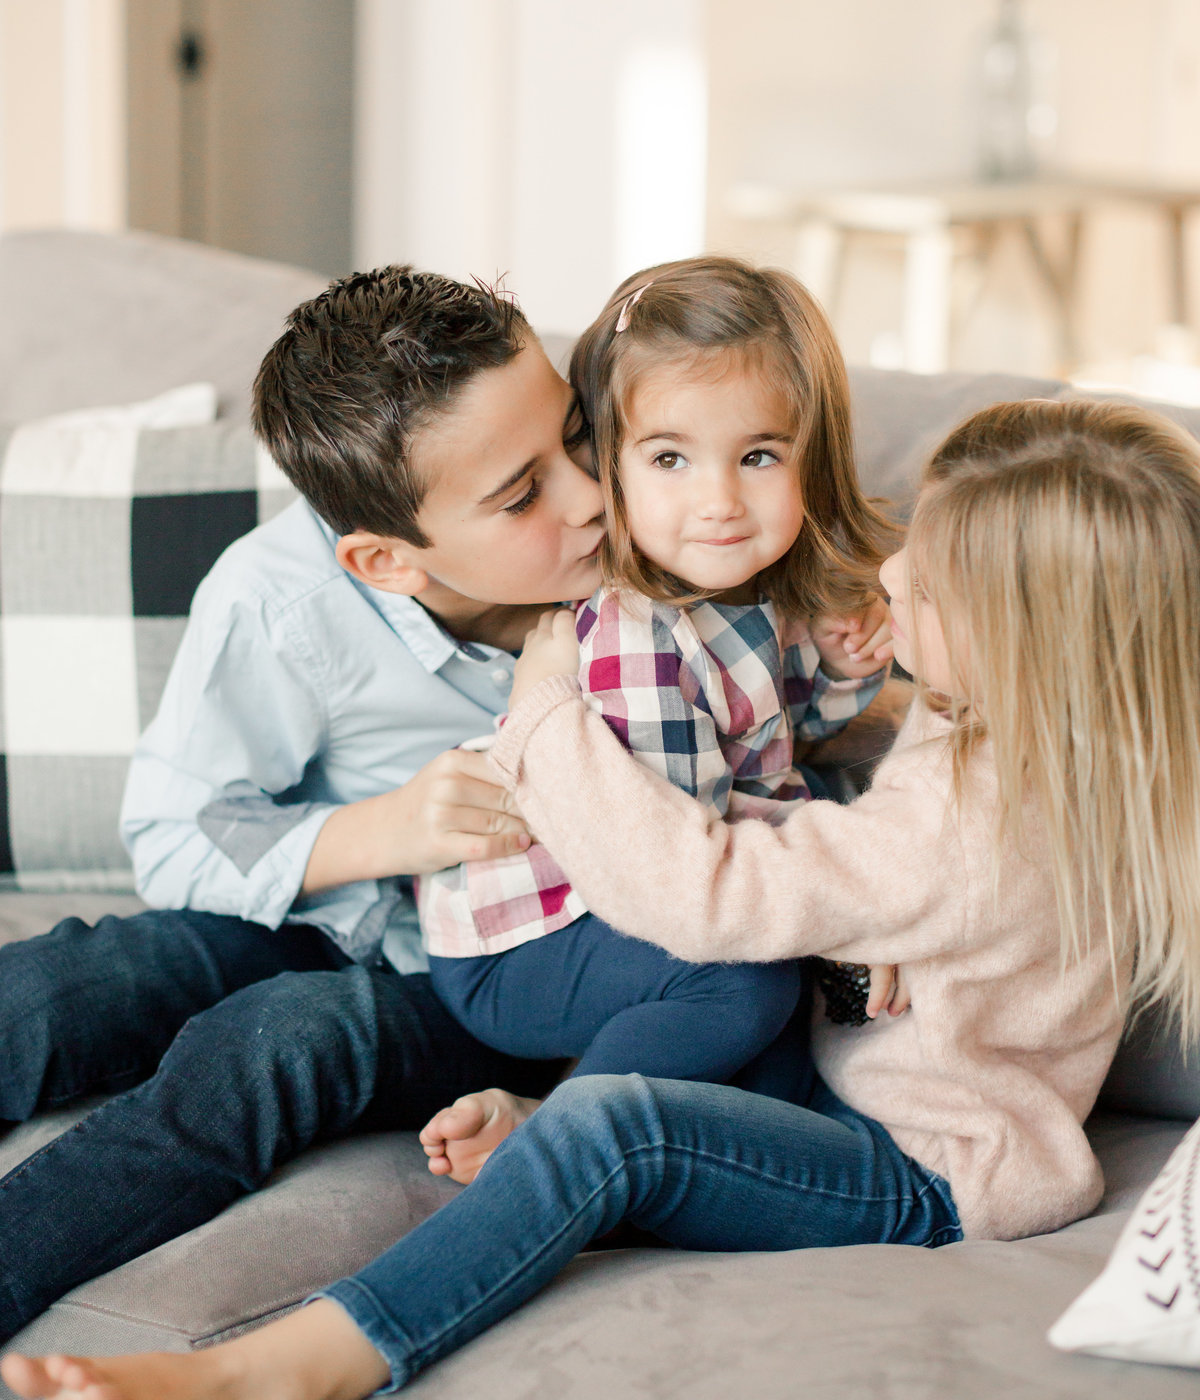 very sweet siblings of young sister cuddle on couch for lifestyle family photography